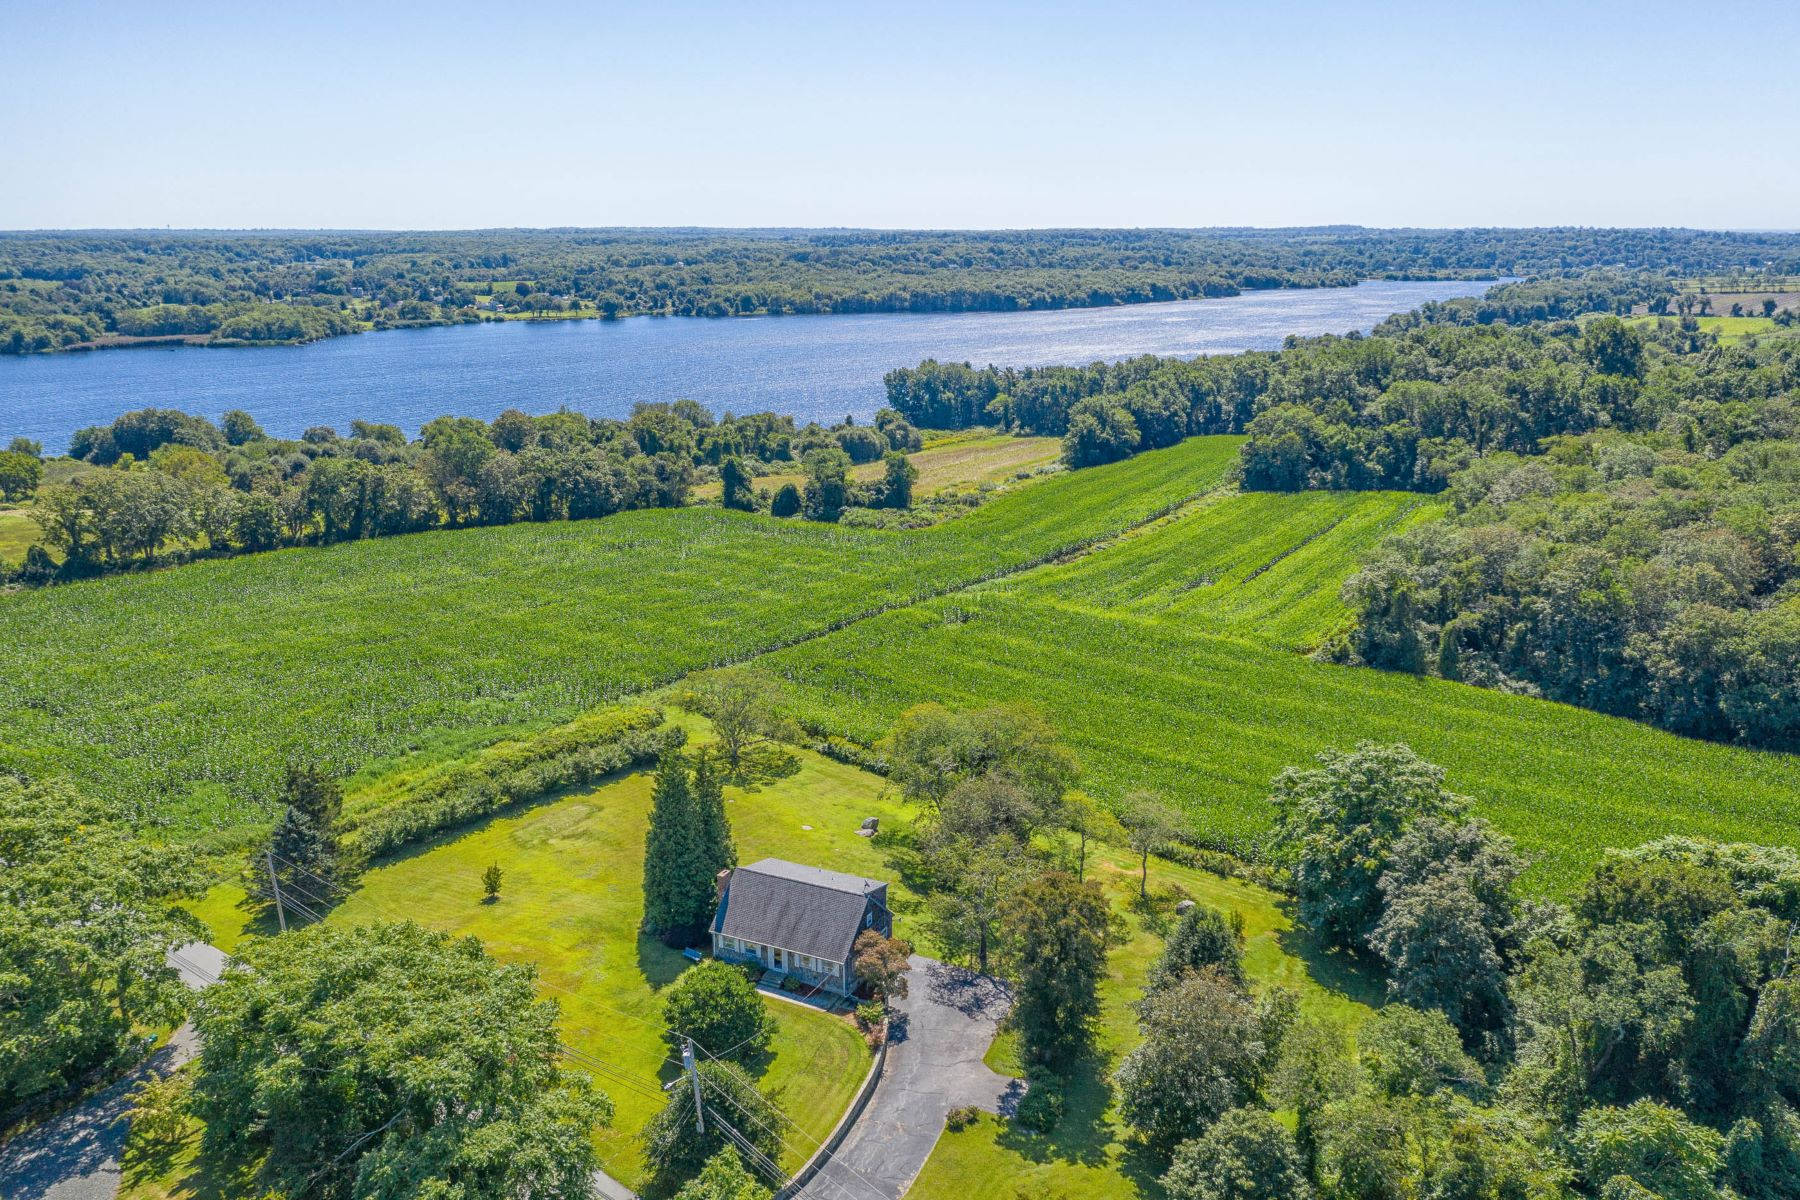 Single Family Homes for Sale at 310 Puncateest Neck Road, Tiverton, RI 310 Puncateest Neck Road Tiverton, Rhode Island 02878 United States